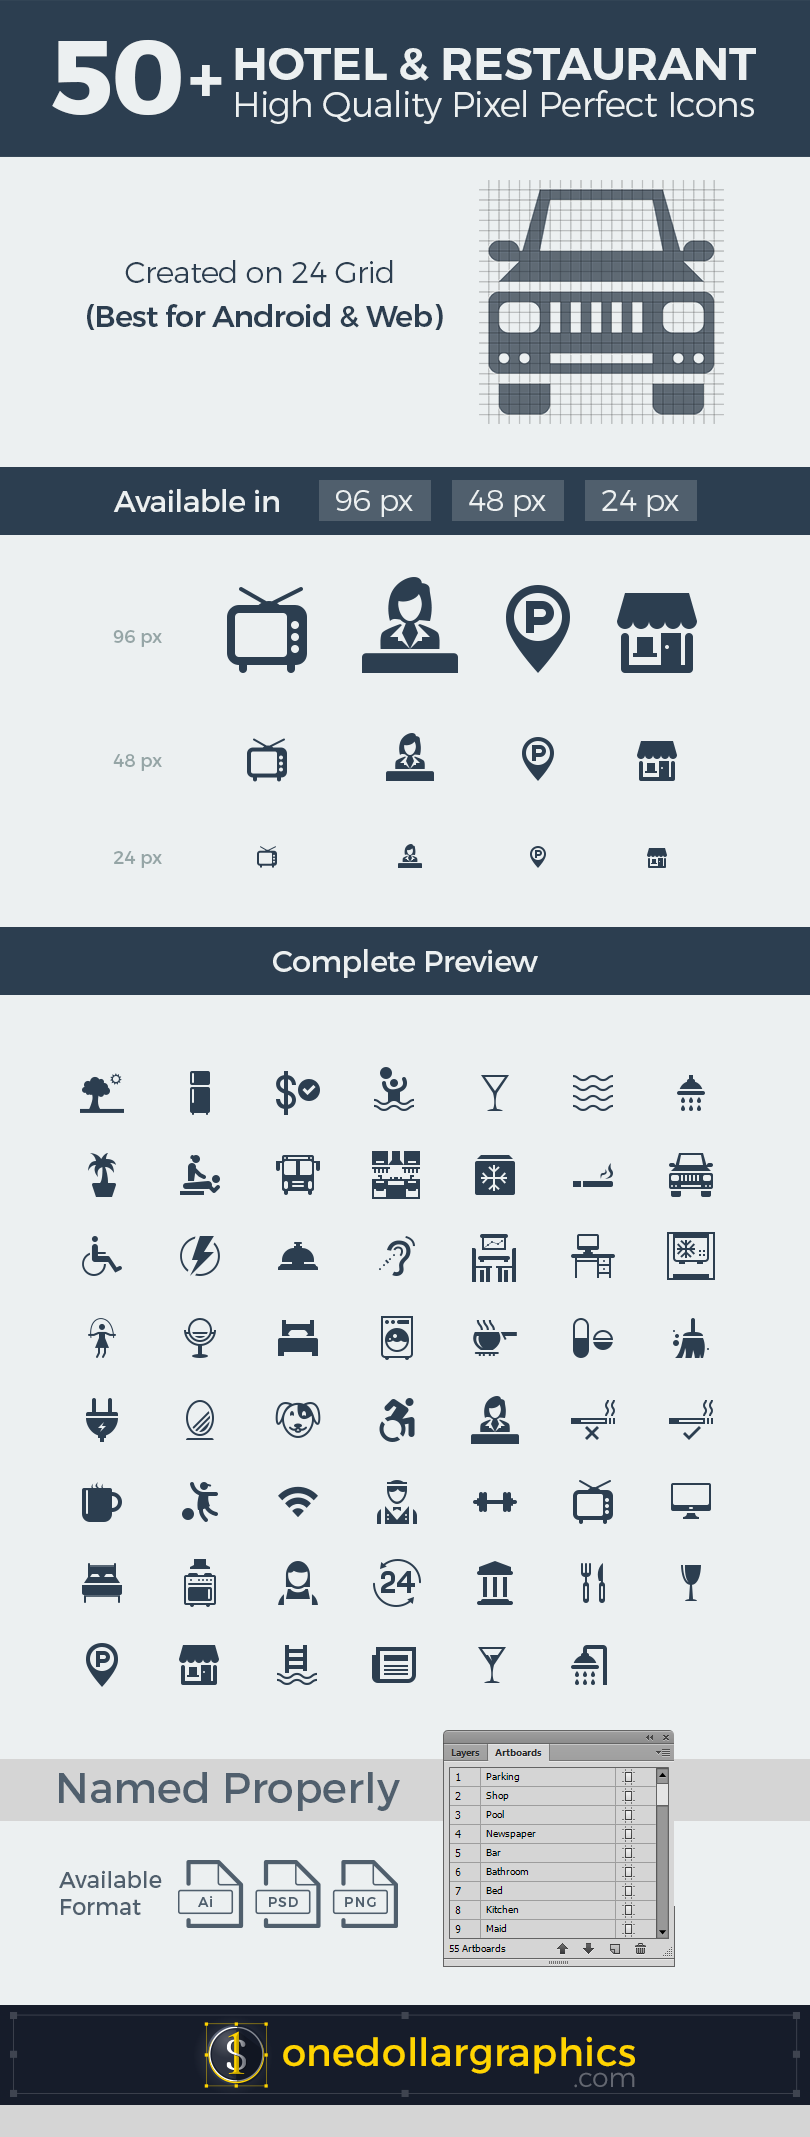 hotel-restaurant-pixel-perfect-icons-5